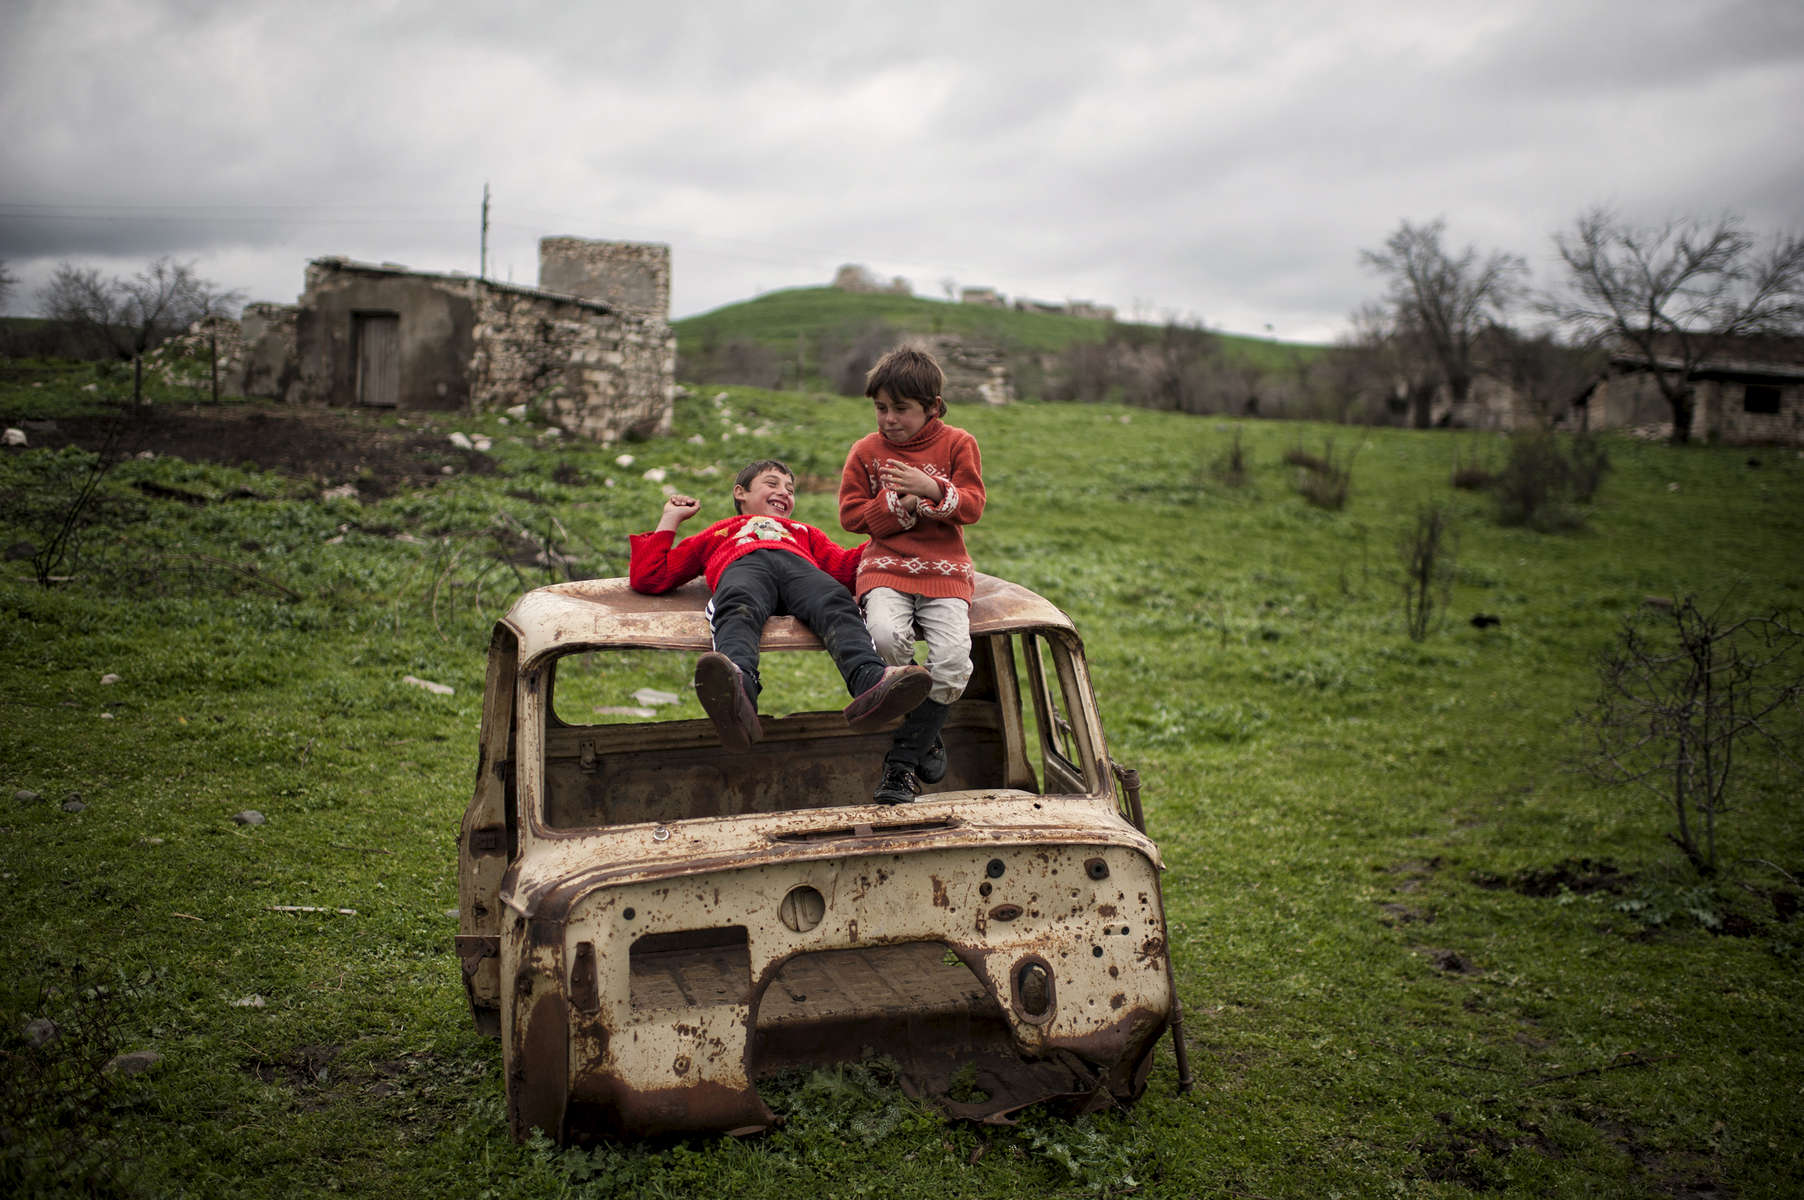 The Piryan family - father Roma, mother Nune, and children 13 year-old Merujan, 8 year-old Gita, and baby Anna live right on the edge of an anti-tank and anti-personnel minefield.  The parents are constantly worried that their children will wander into the field while playing.